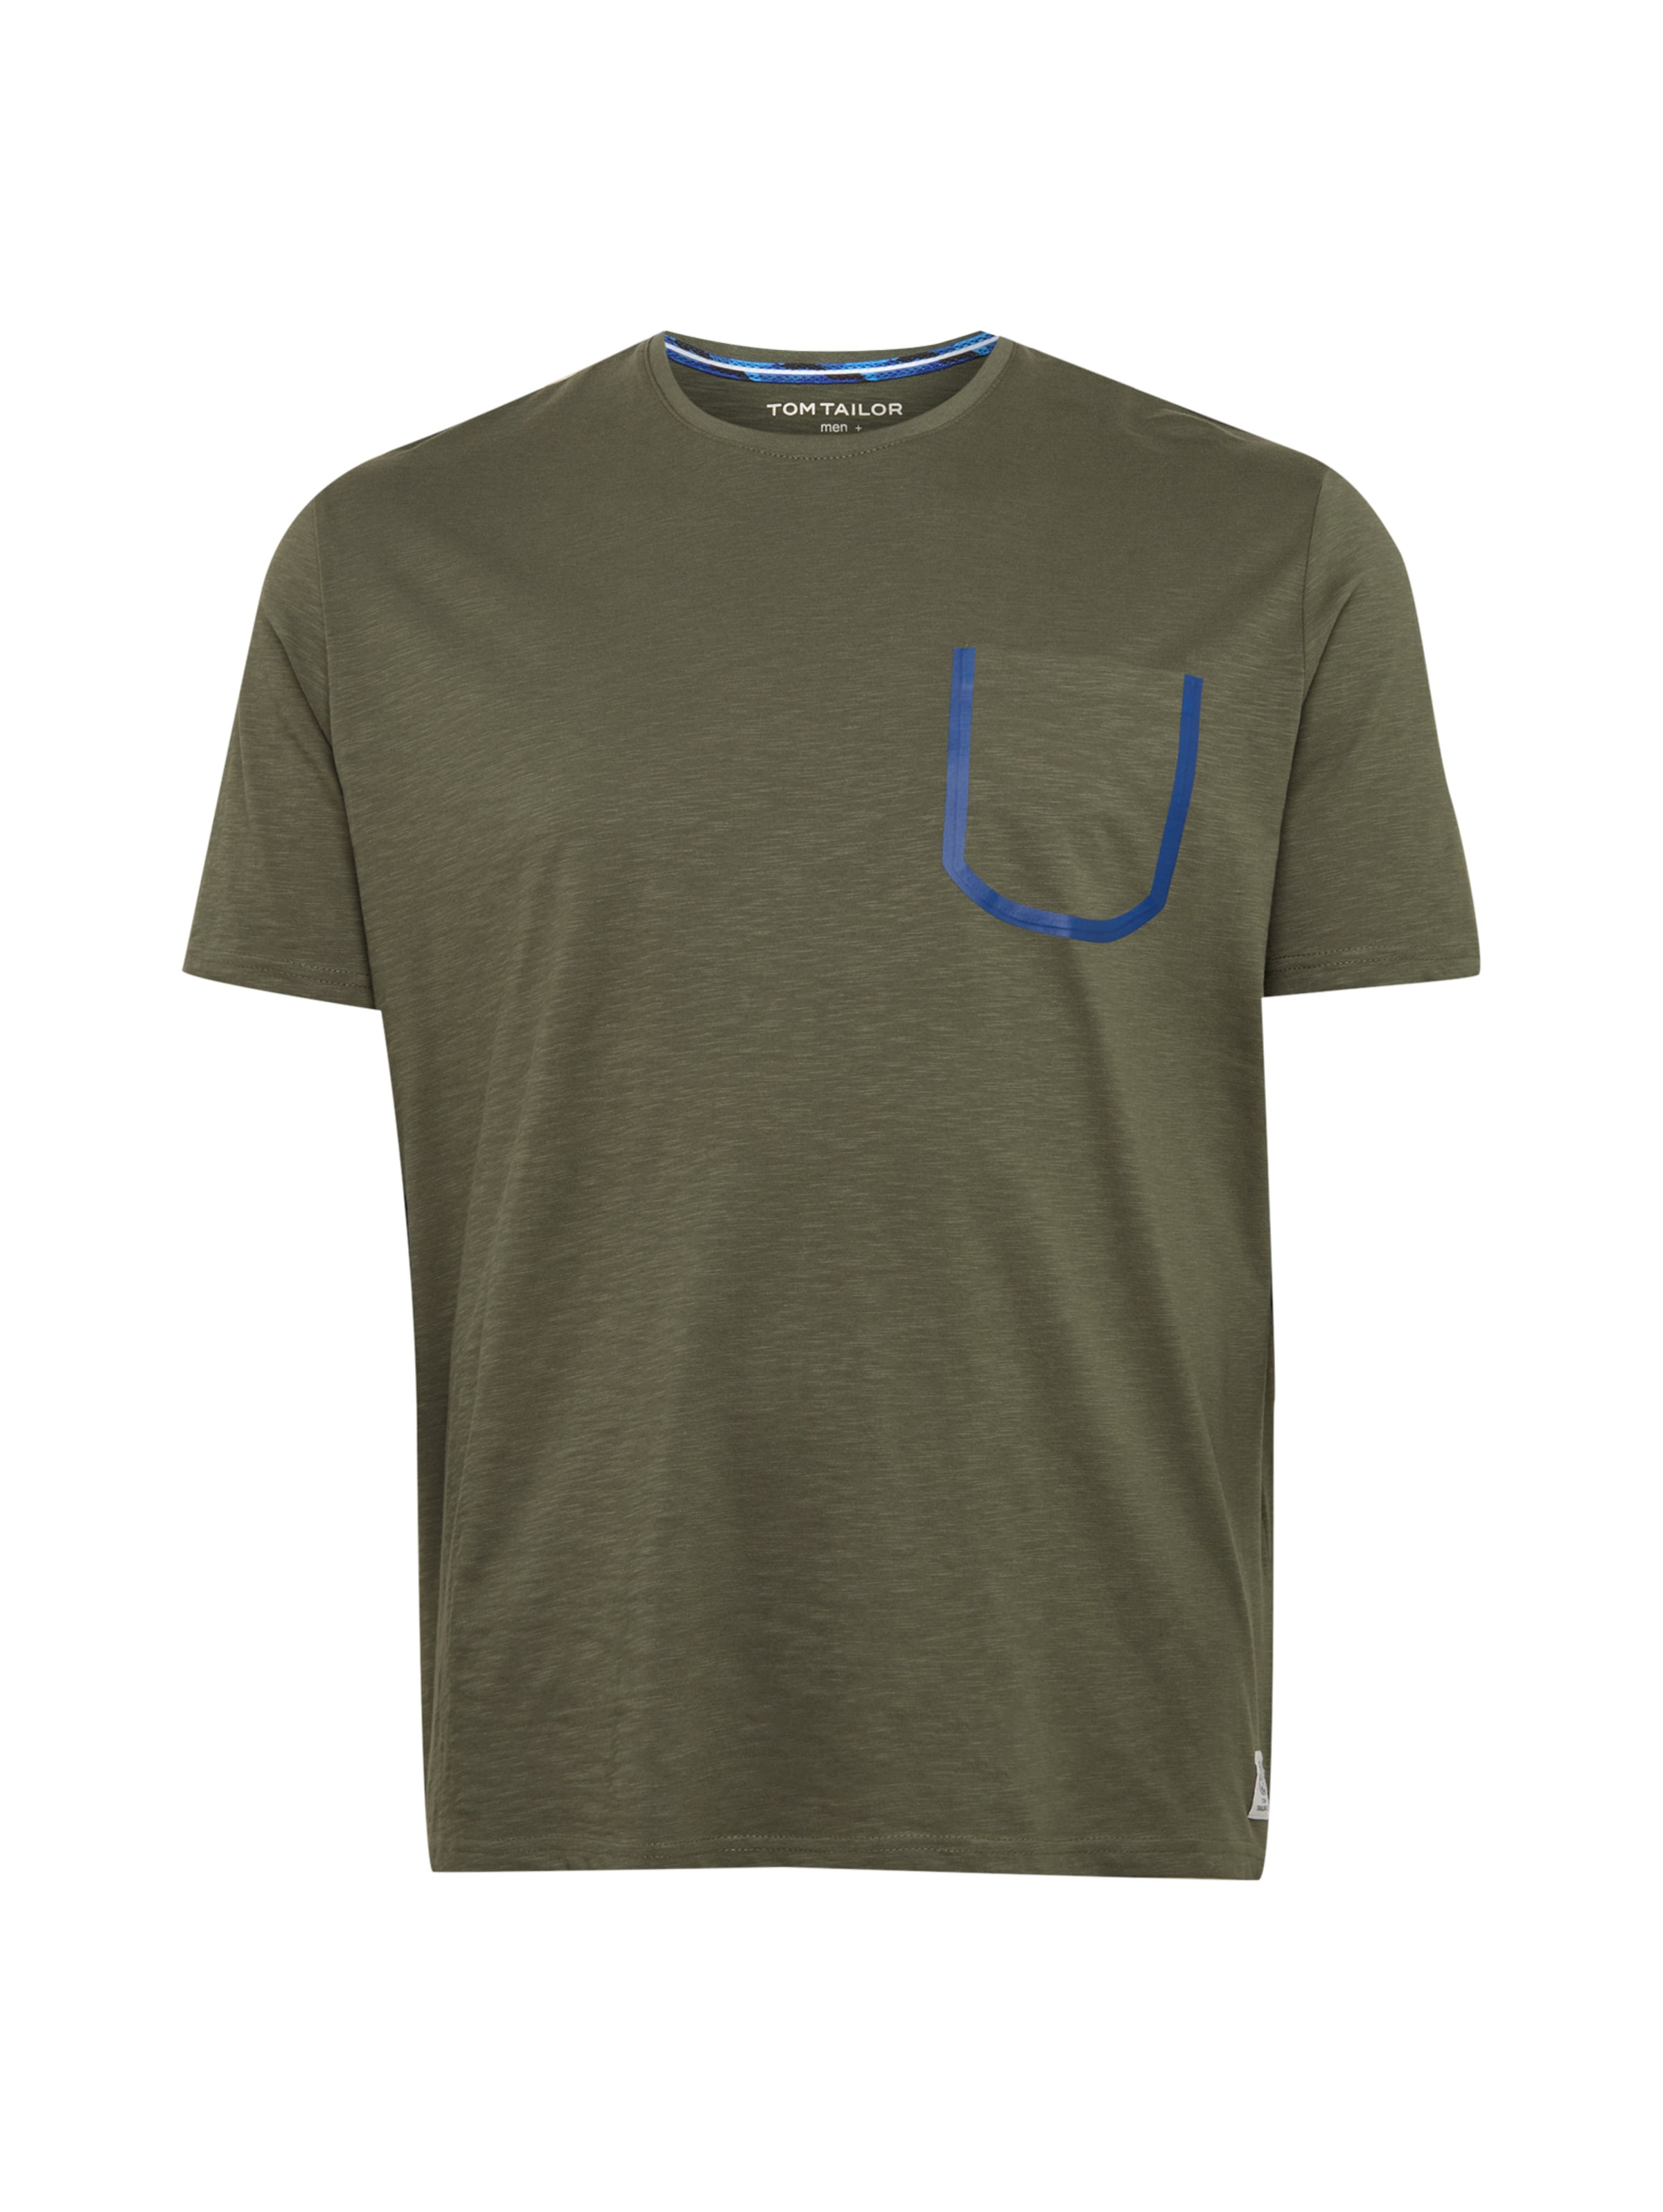 Tailor T In shirt BlauKhaki Tom UpVGjLqSzM